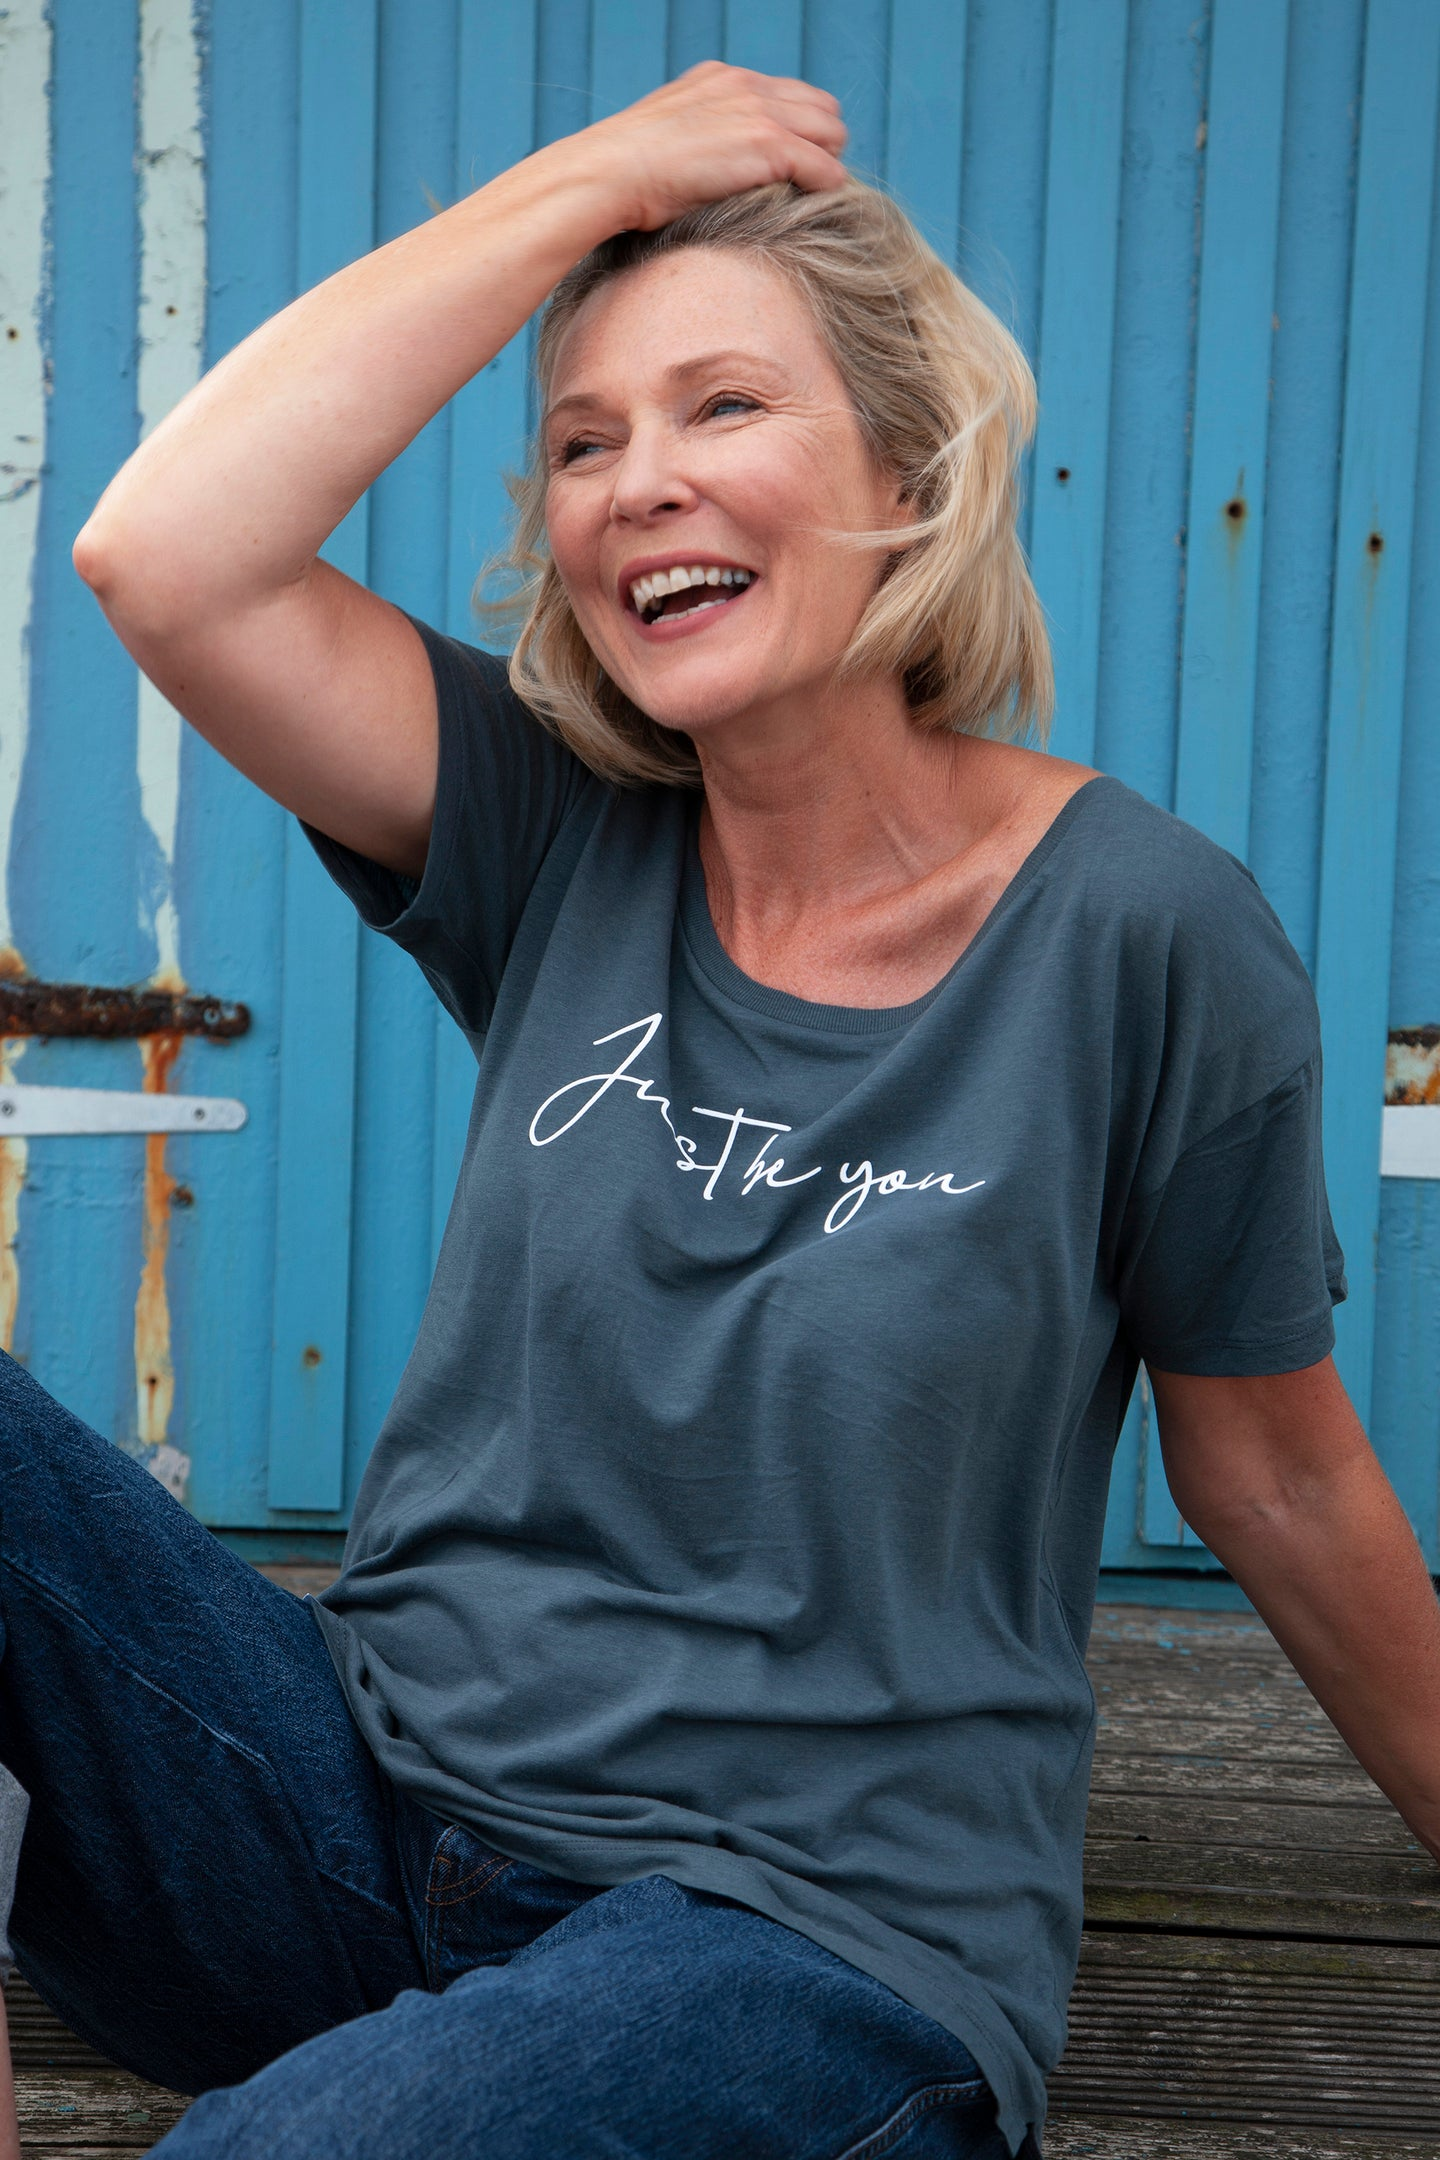 'Just be you' Women's Loose-fit T-Shirt